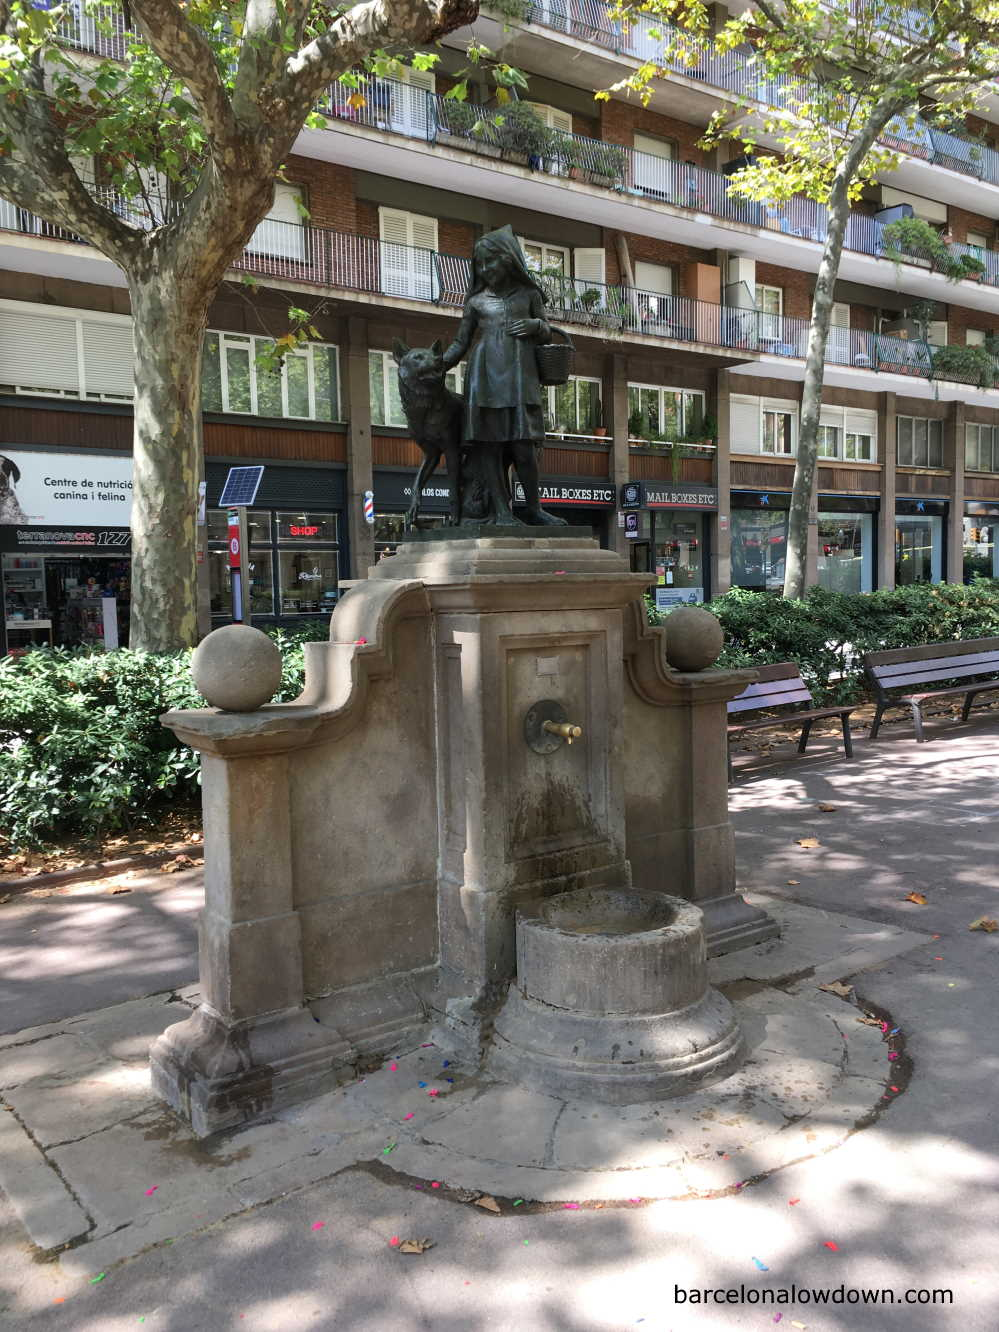 The Little Red Riding Hood fountain in Barcelona